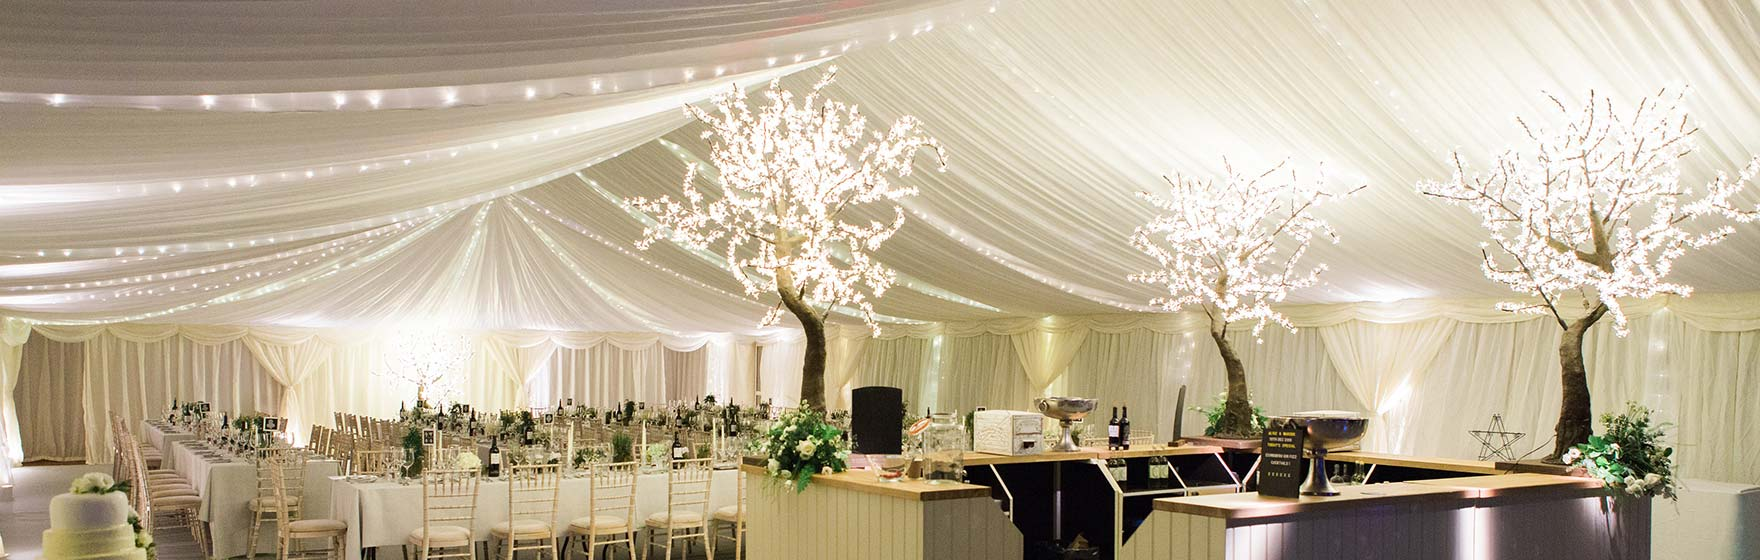 Marquee Lighting Solutions Hire With